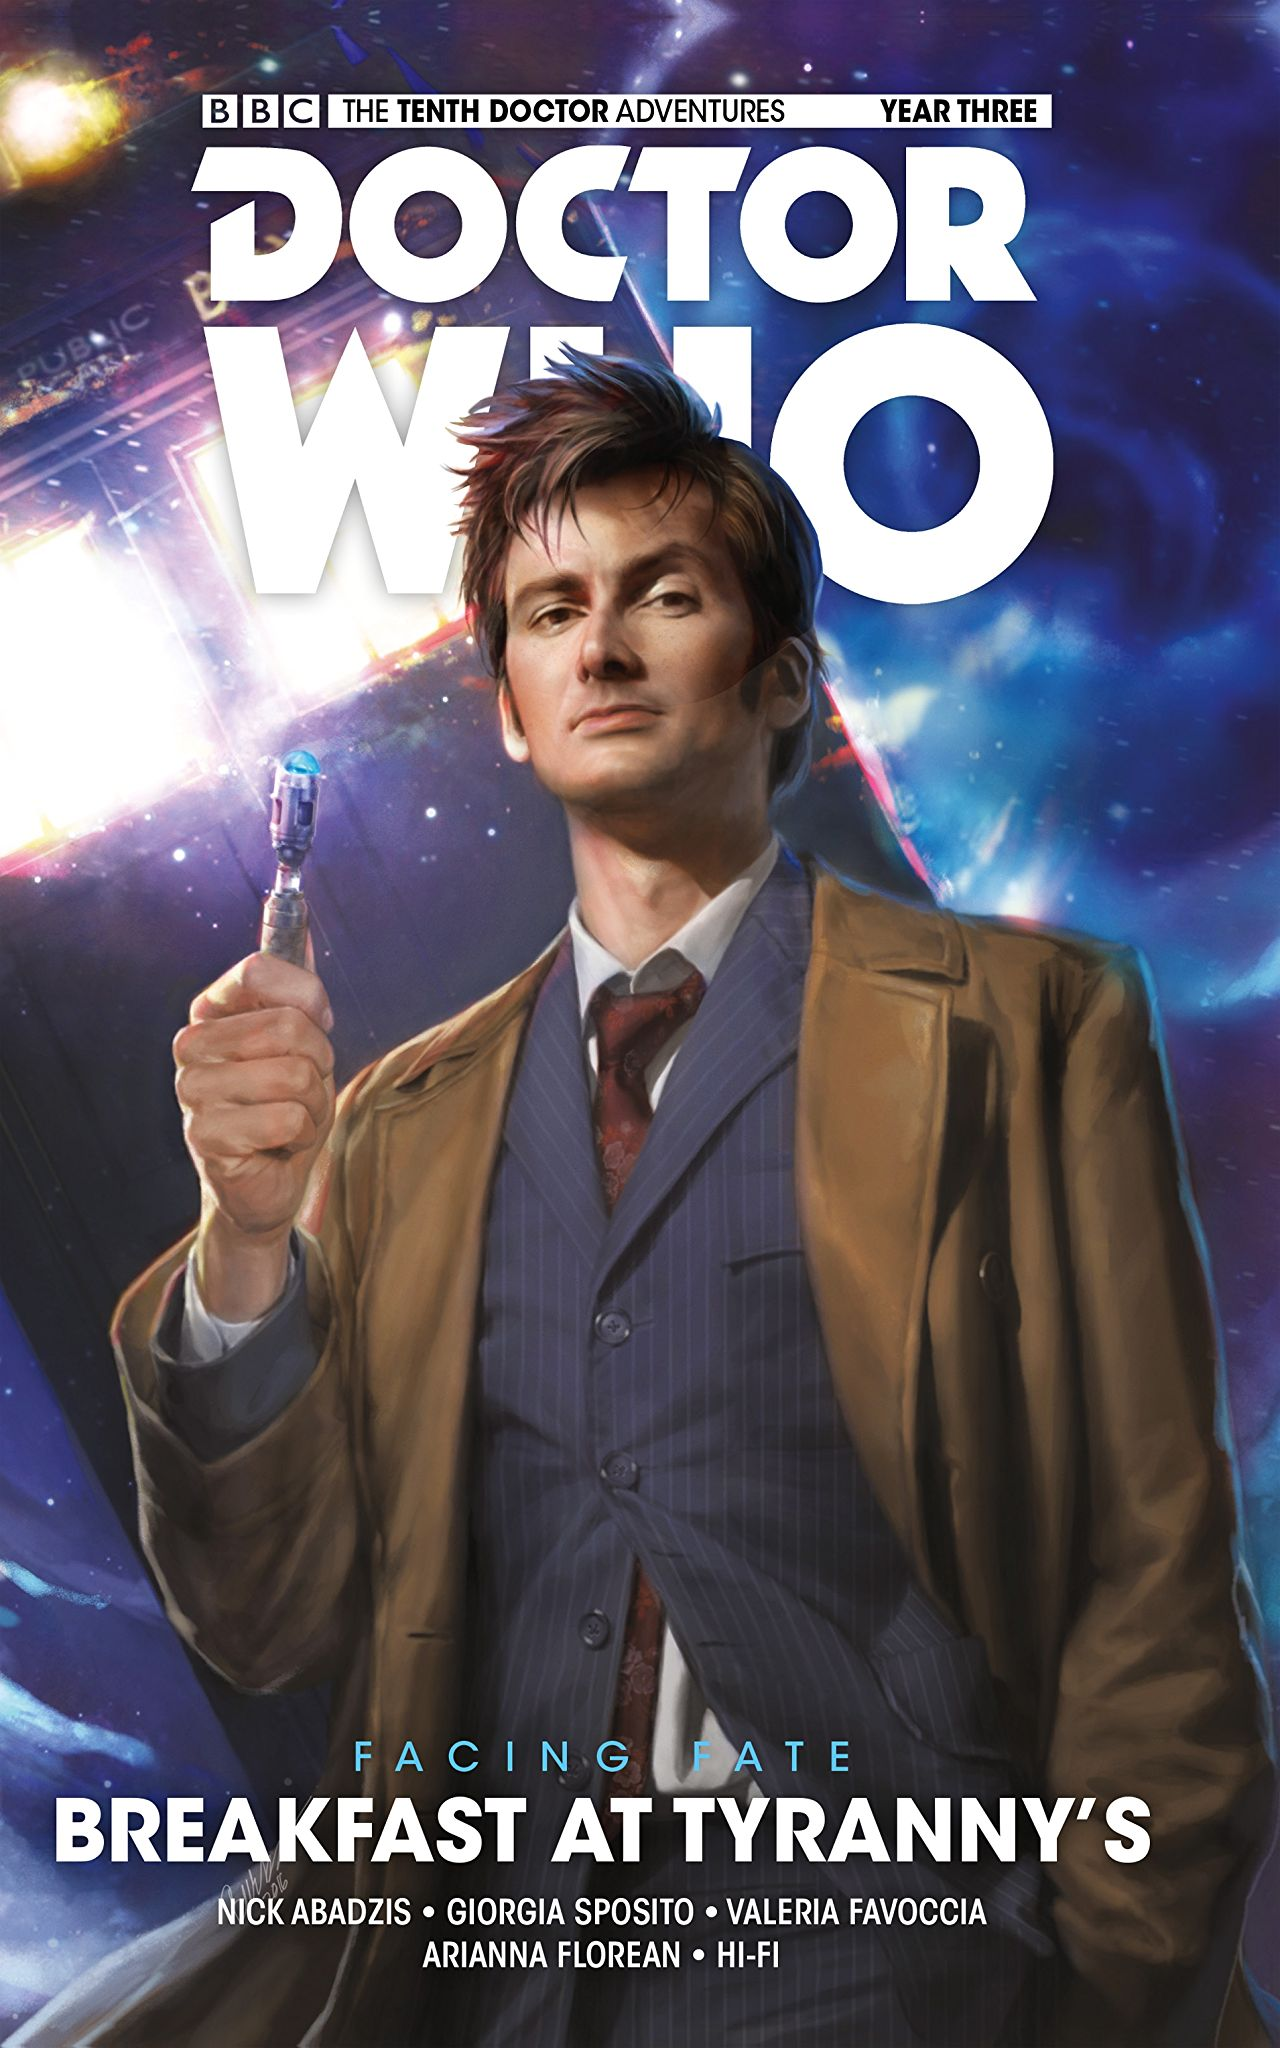 Doctor Who Year 3 Vol. 1 -  Breakfast at Tyranny's